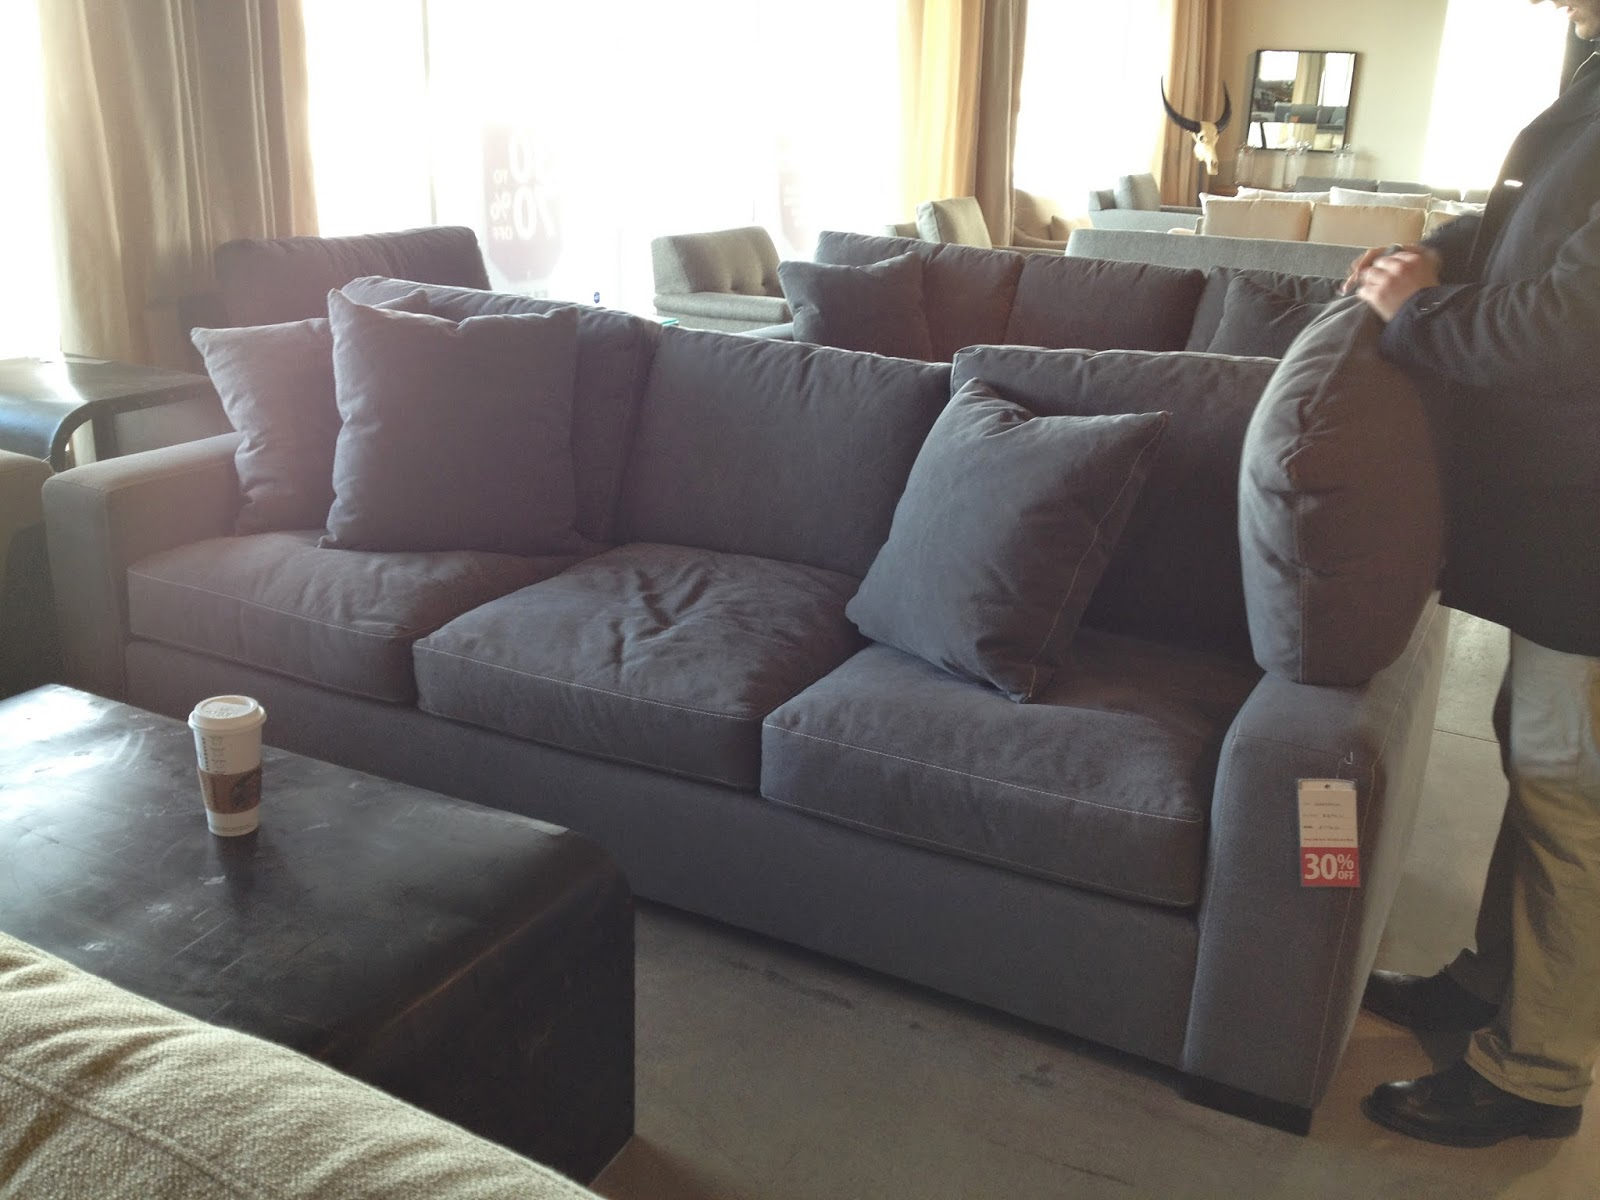 crate and barrel sectional reviews. Black Bedroom Furniture Sets. Home Design Ideas